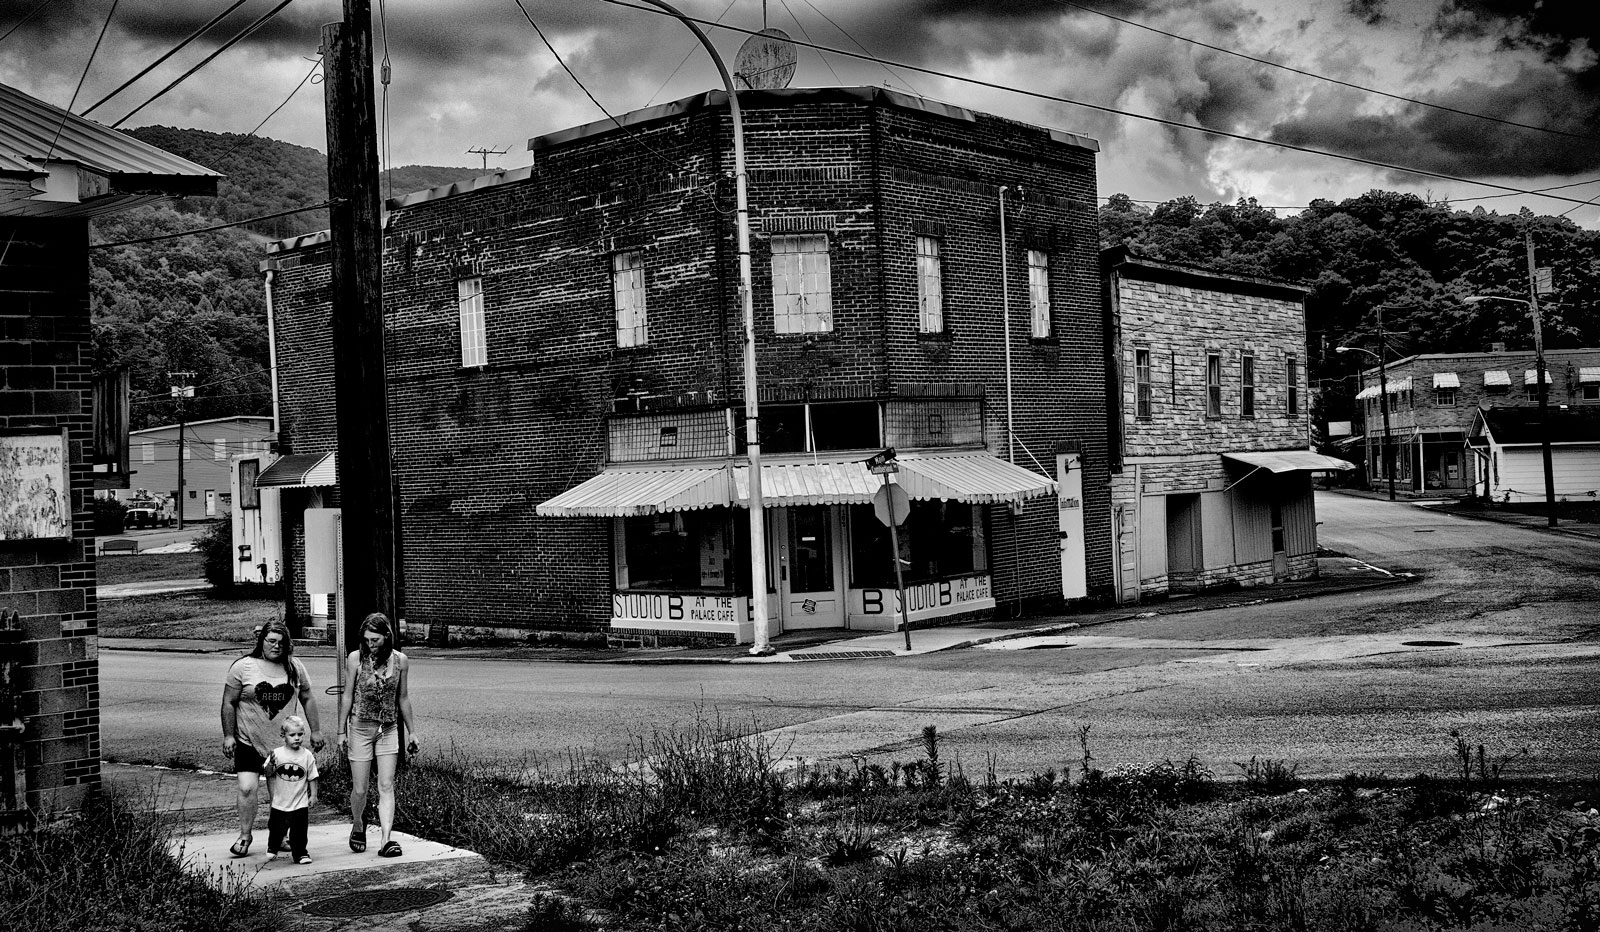 Harlan County, Cumberland, Kentucky, 2015